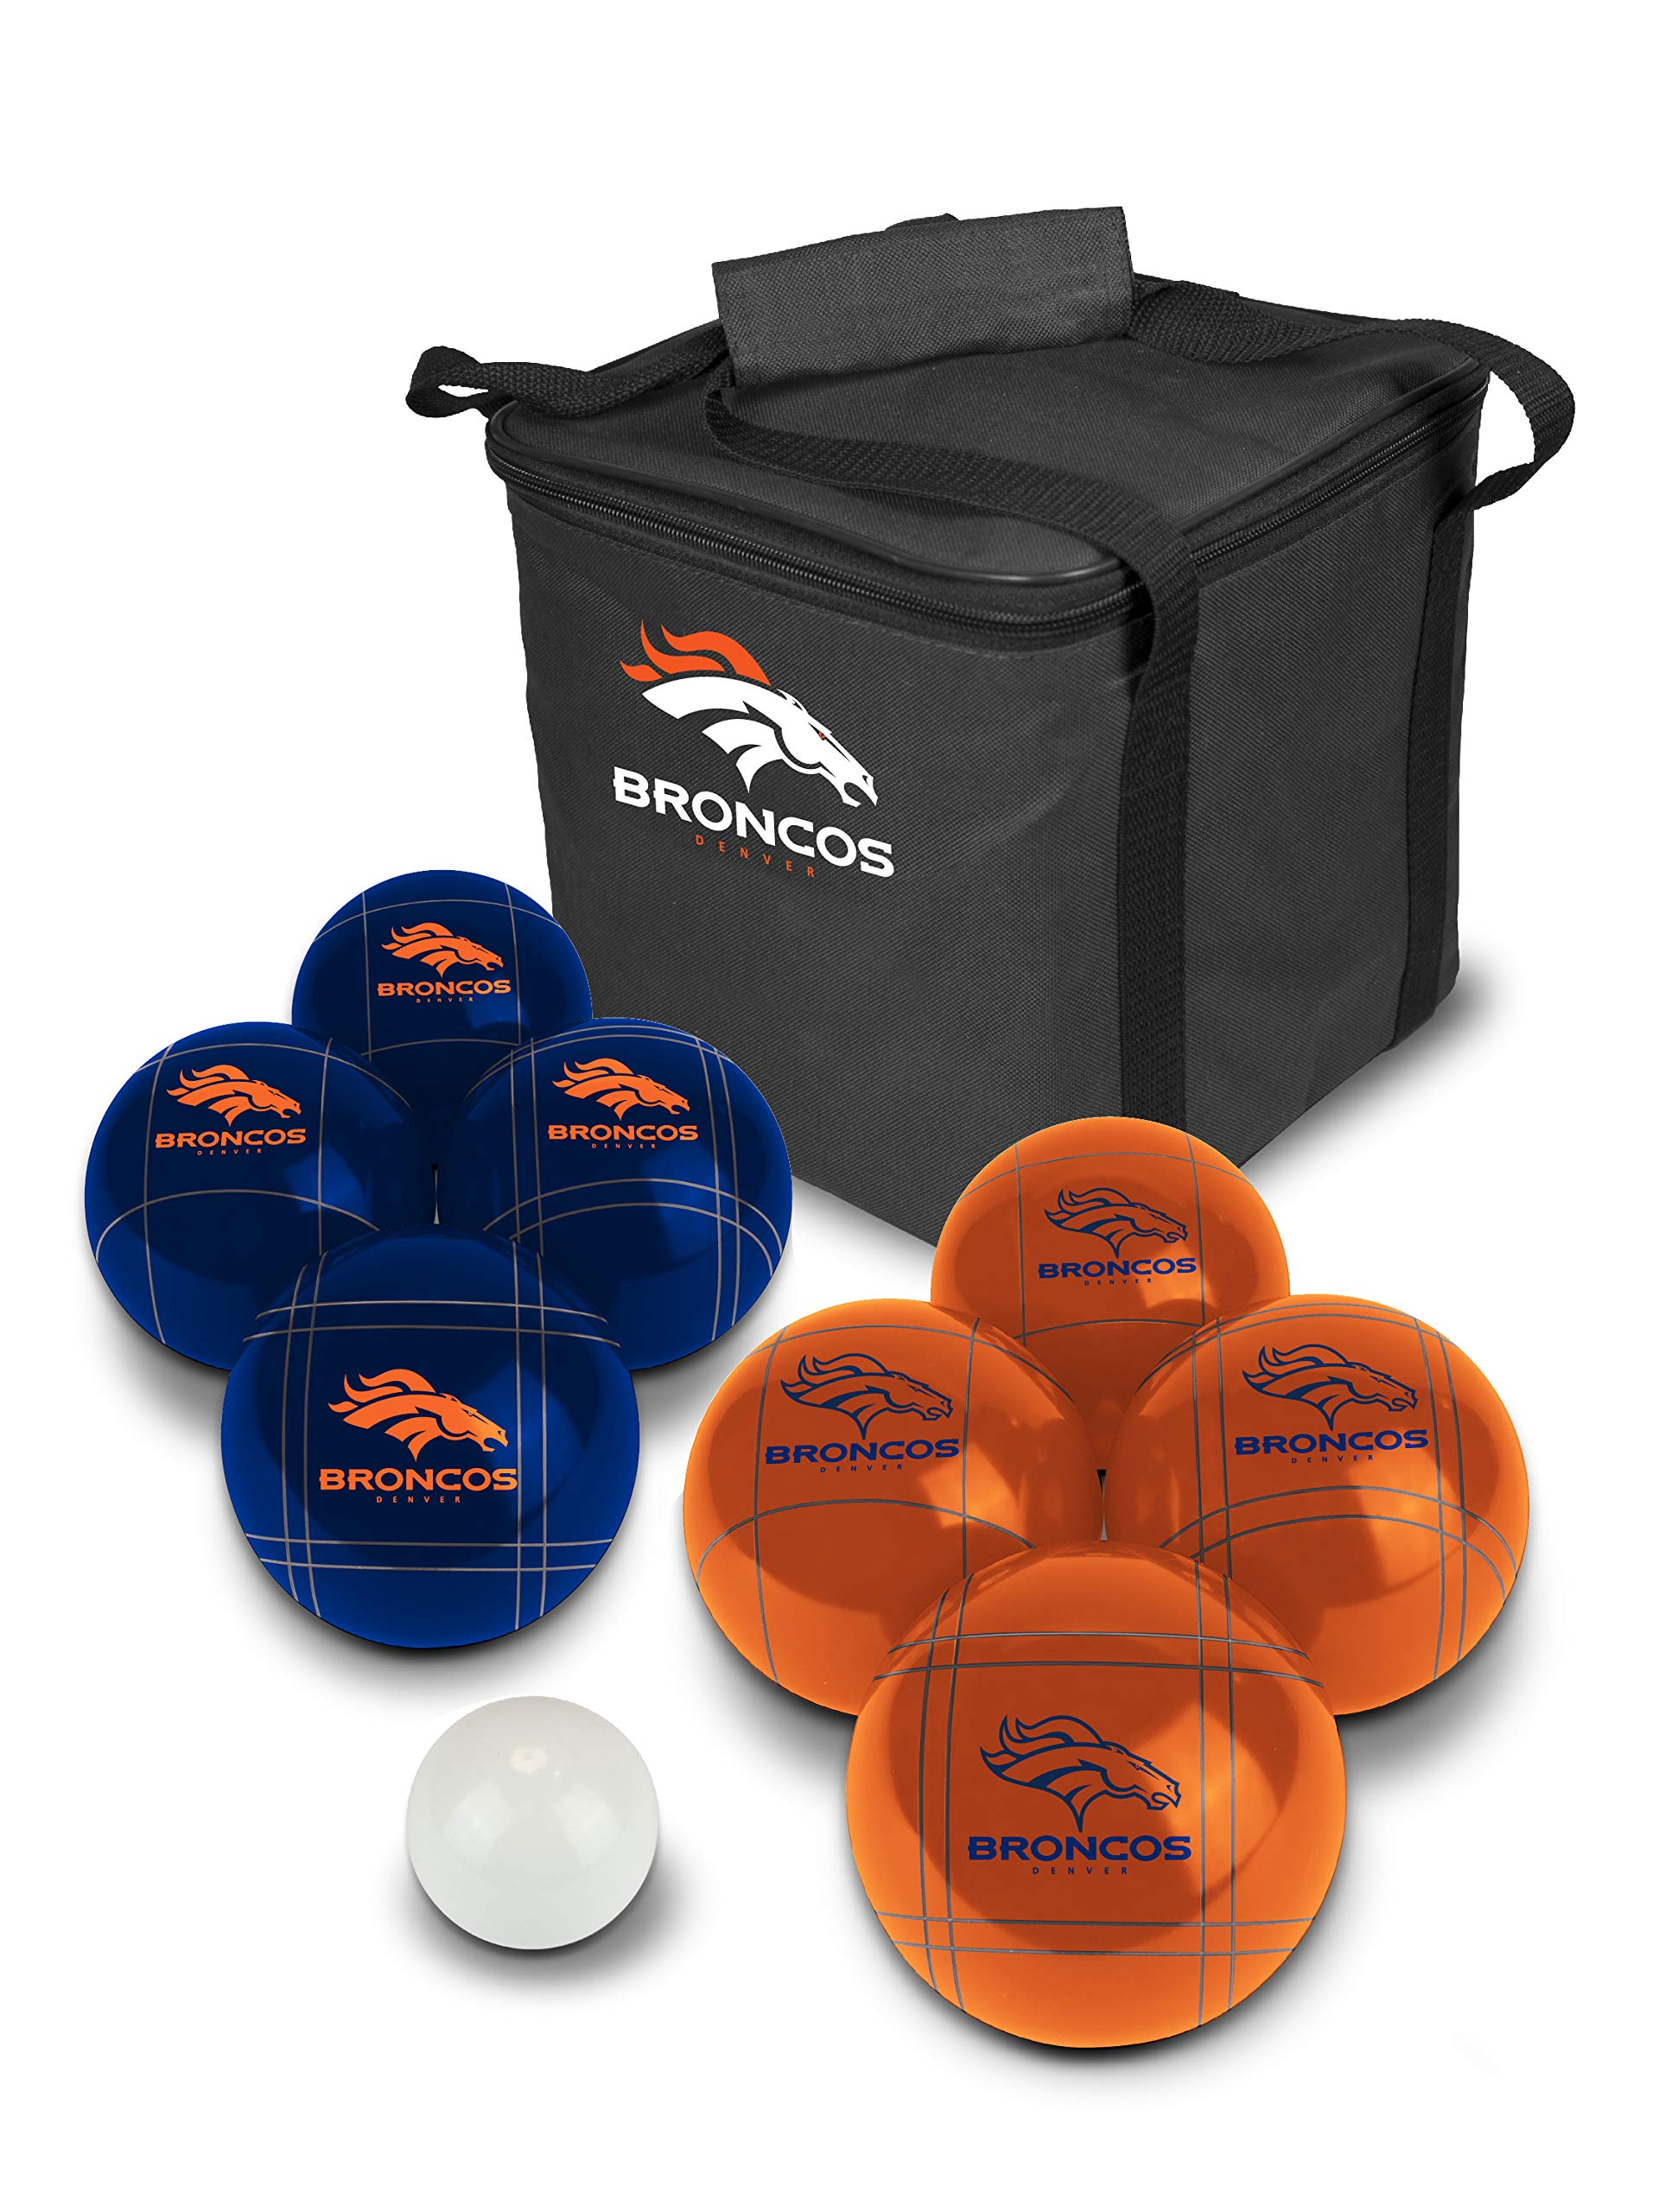 PROLINE NFL Miami Dolphins Bocce Ball Set by PROLINE (Image #1)